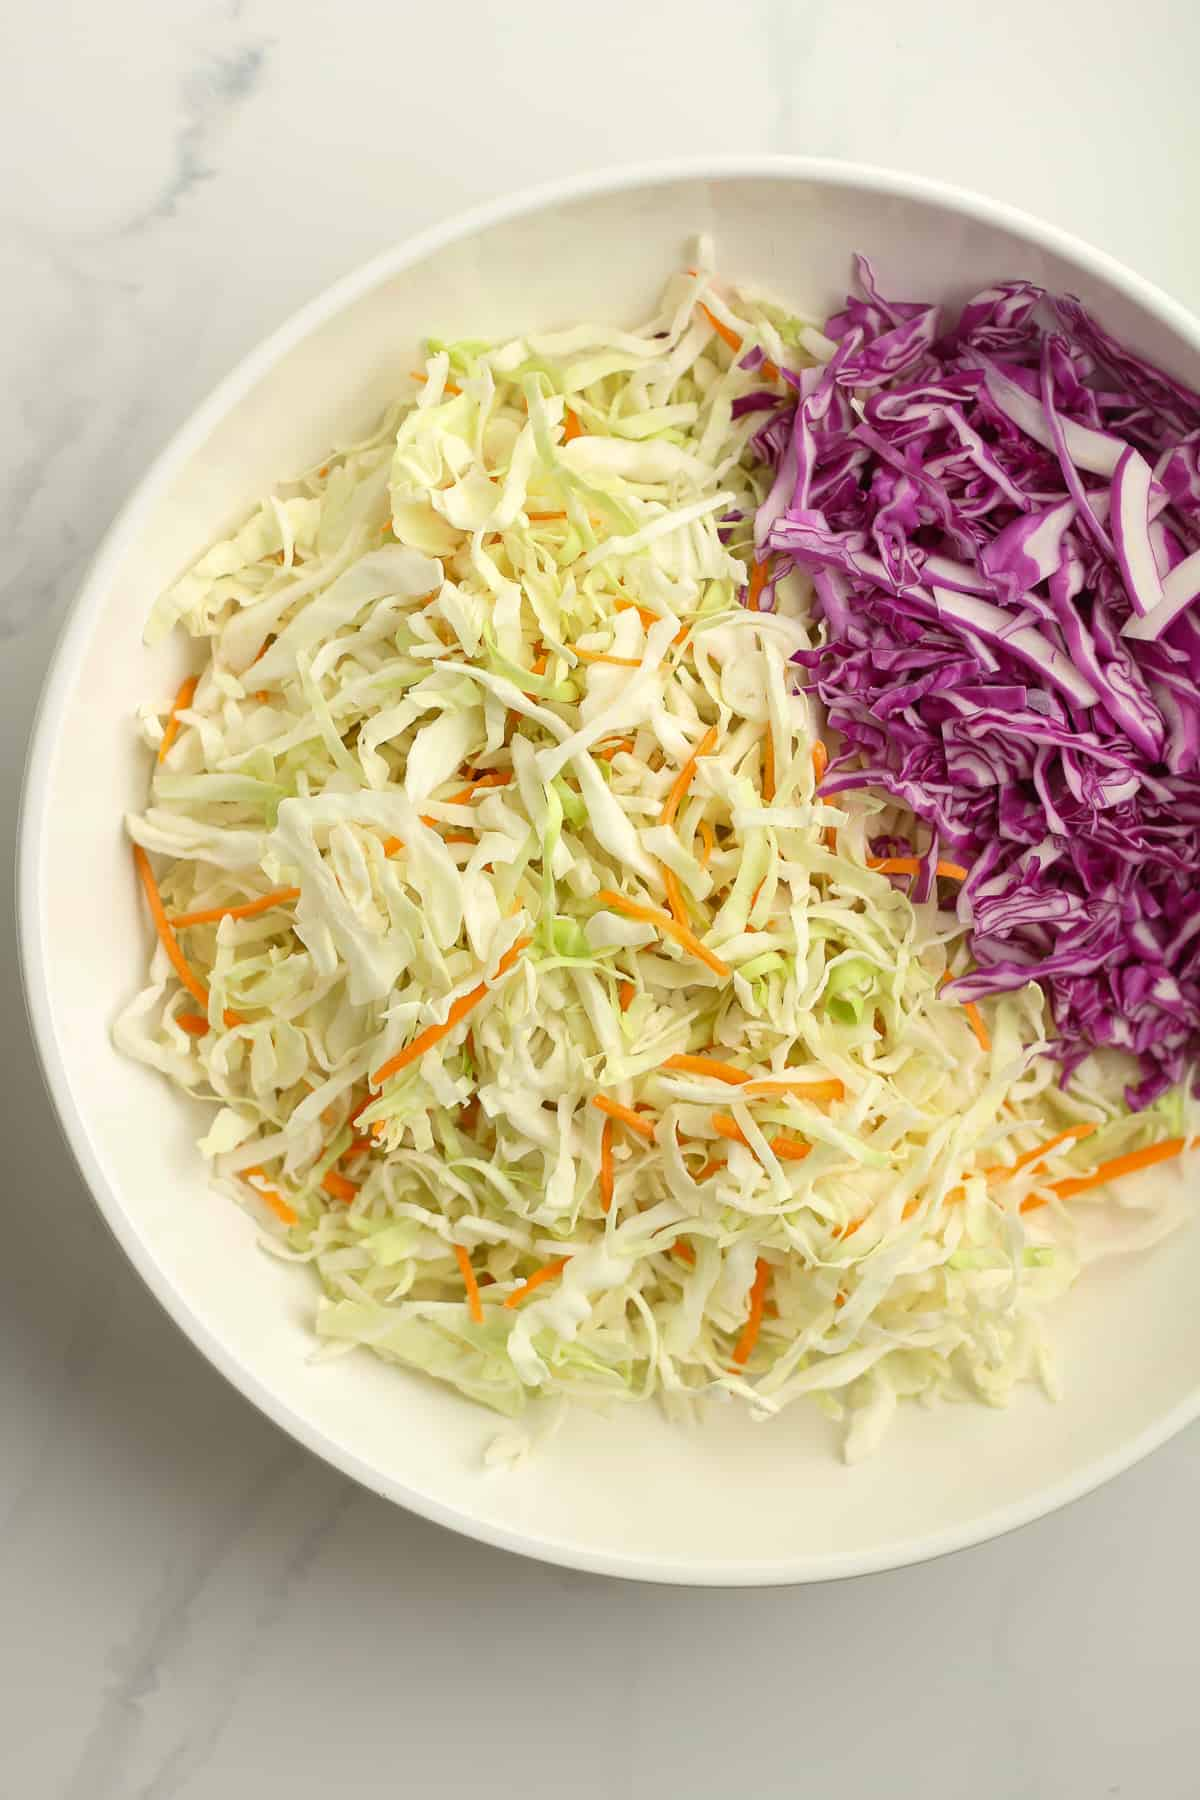 A bowl of cabbage slaw and red cabbage.